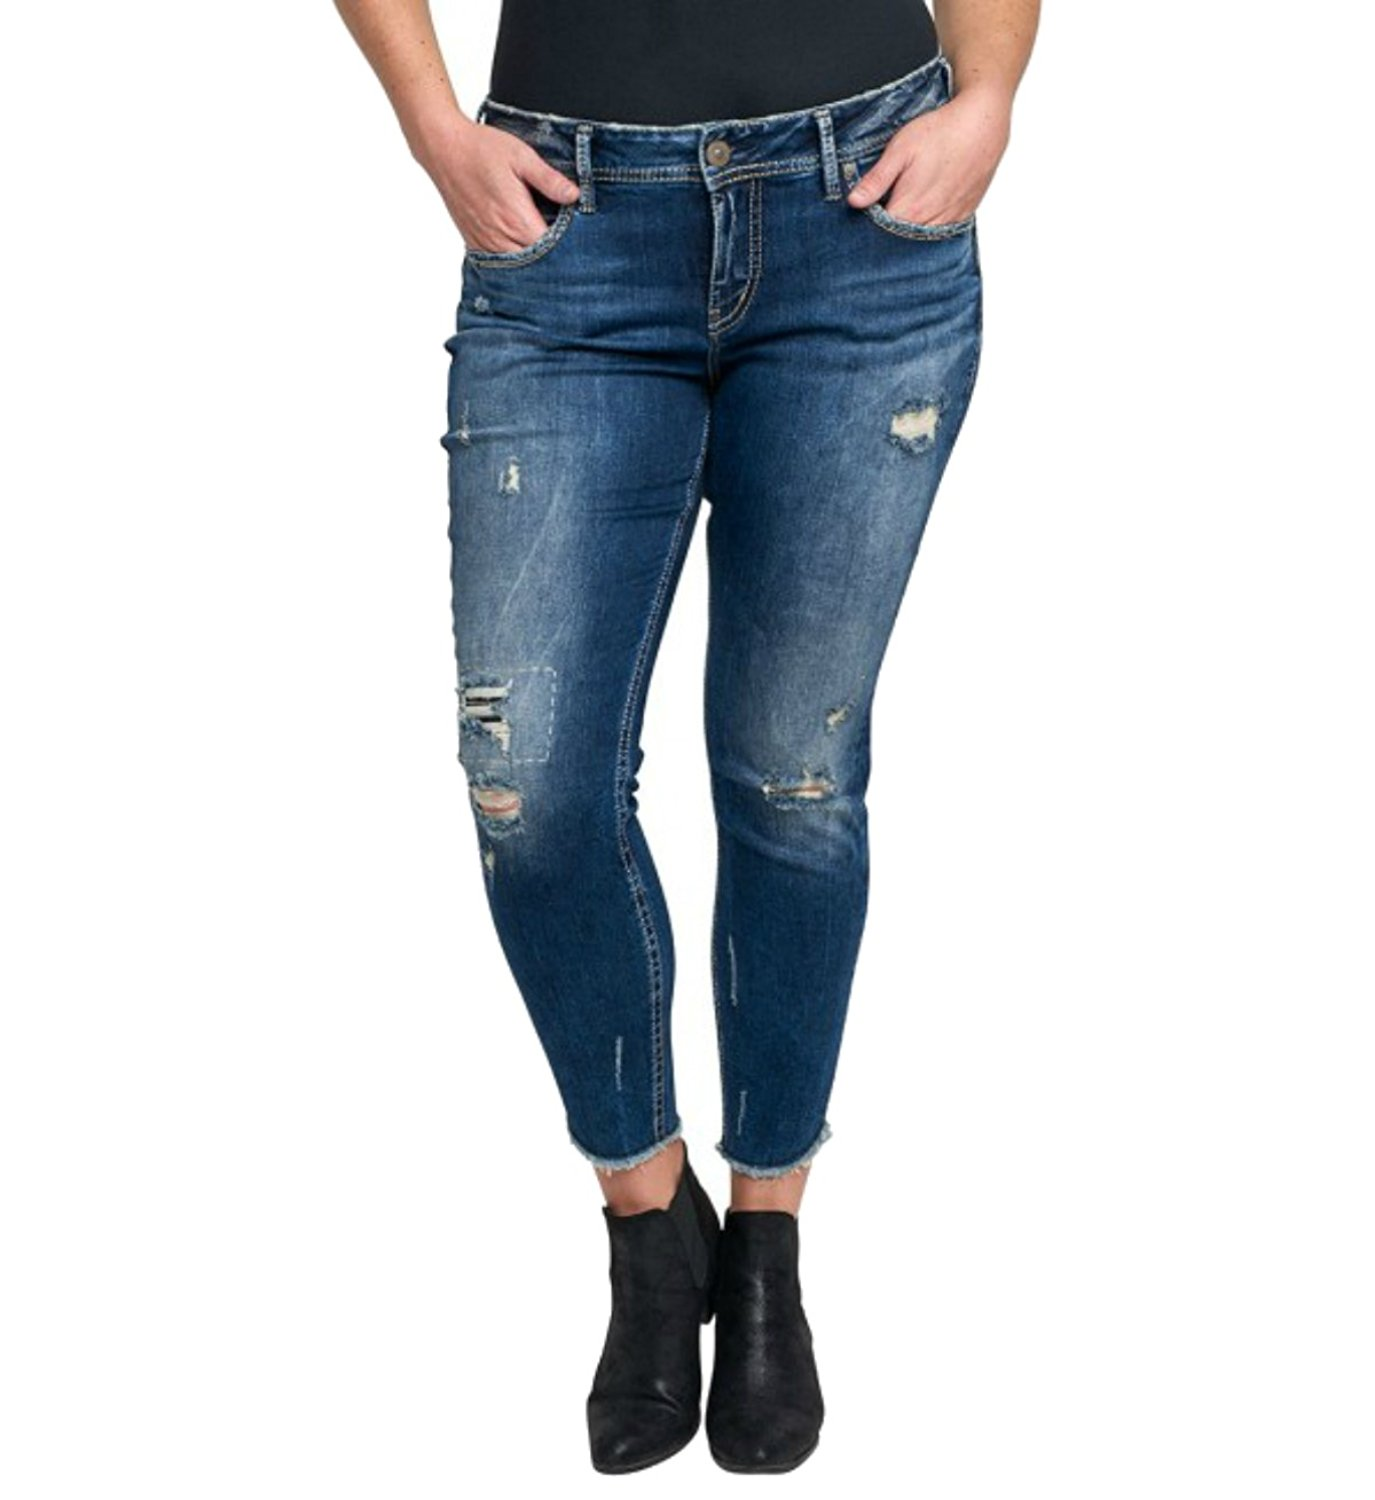 f41b04ddc32 Get Quotations · Silver Jeans Women s Plus Size Suki Mid-Rise Ankle Skinny Jeans  Dark Wash